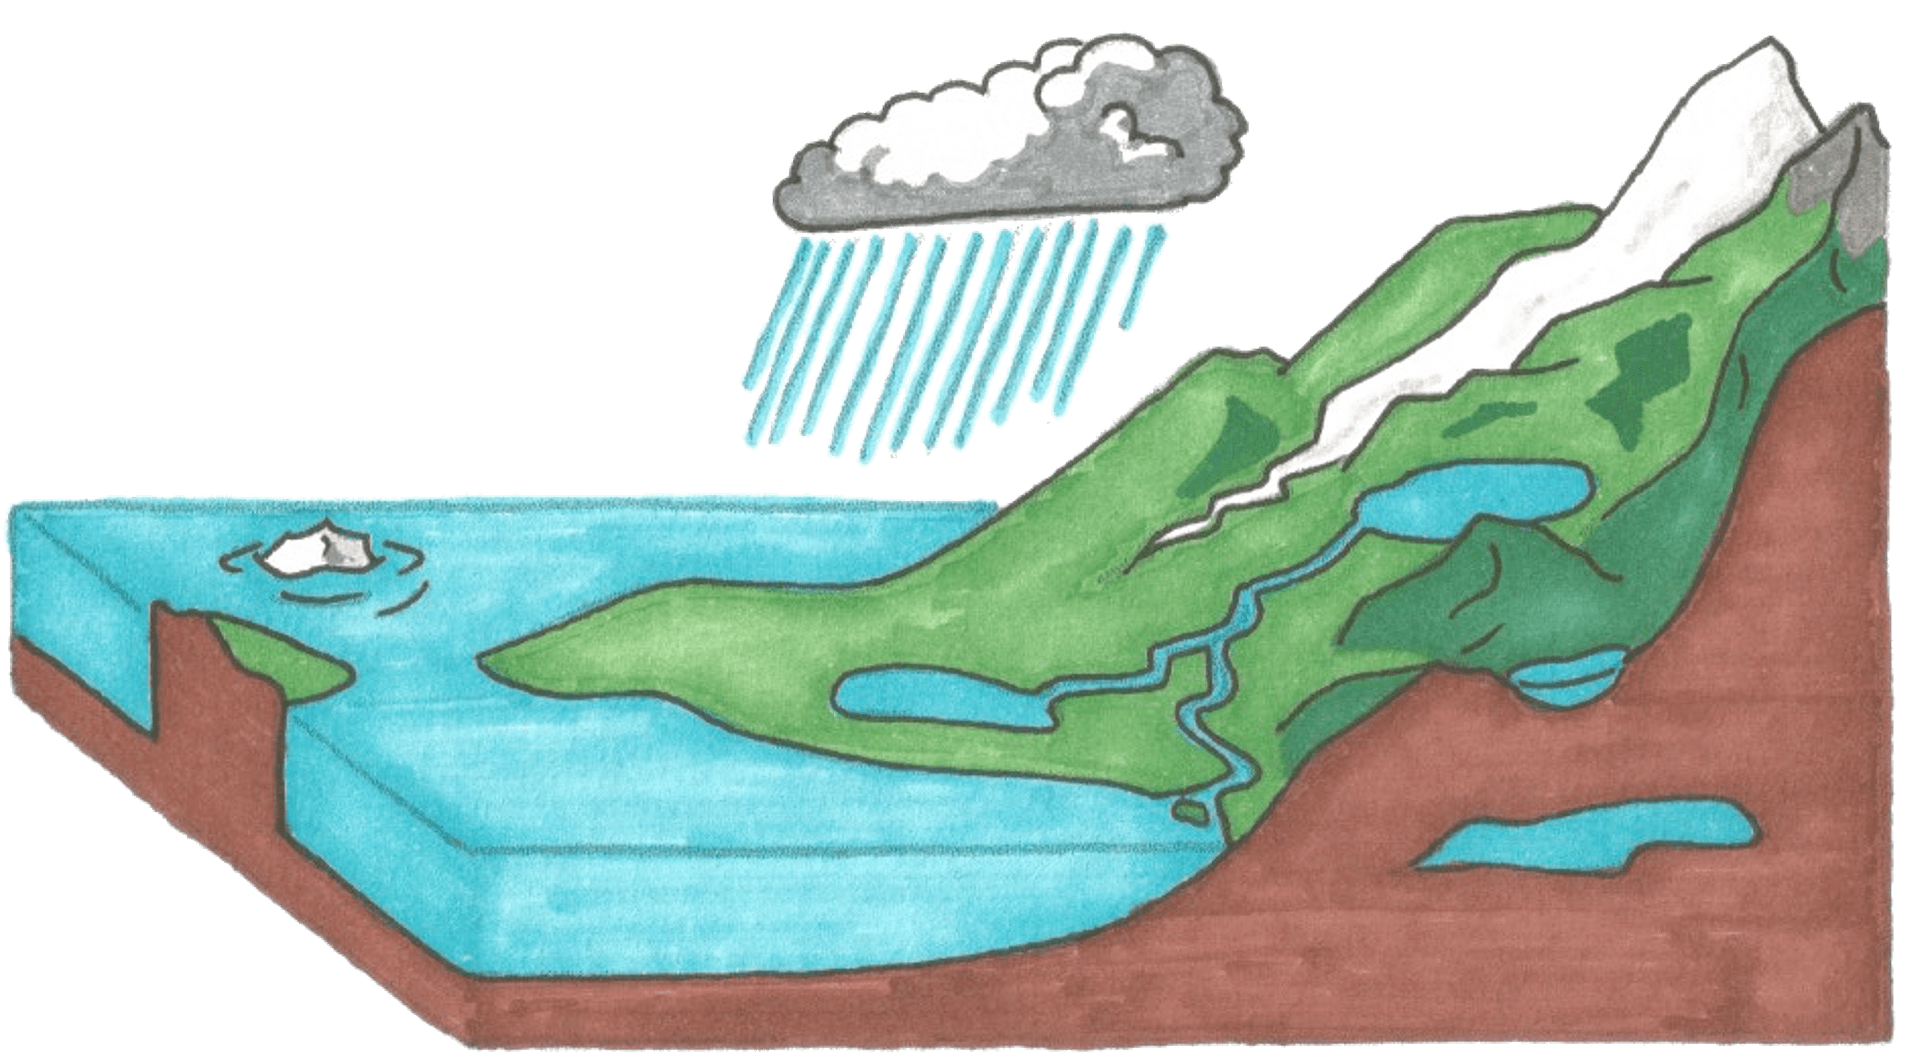 Biosphere And Hydrosphere: Know More About It